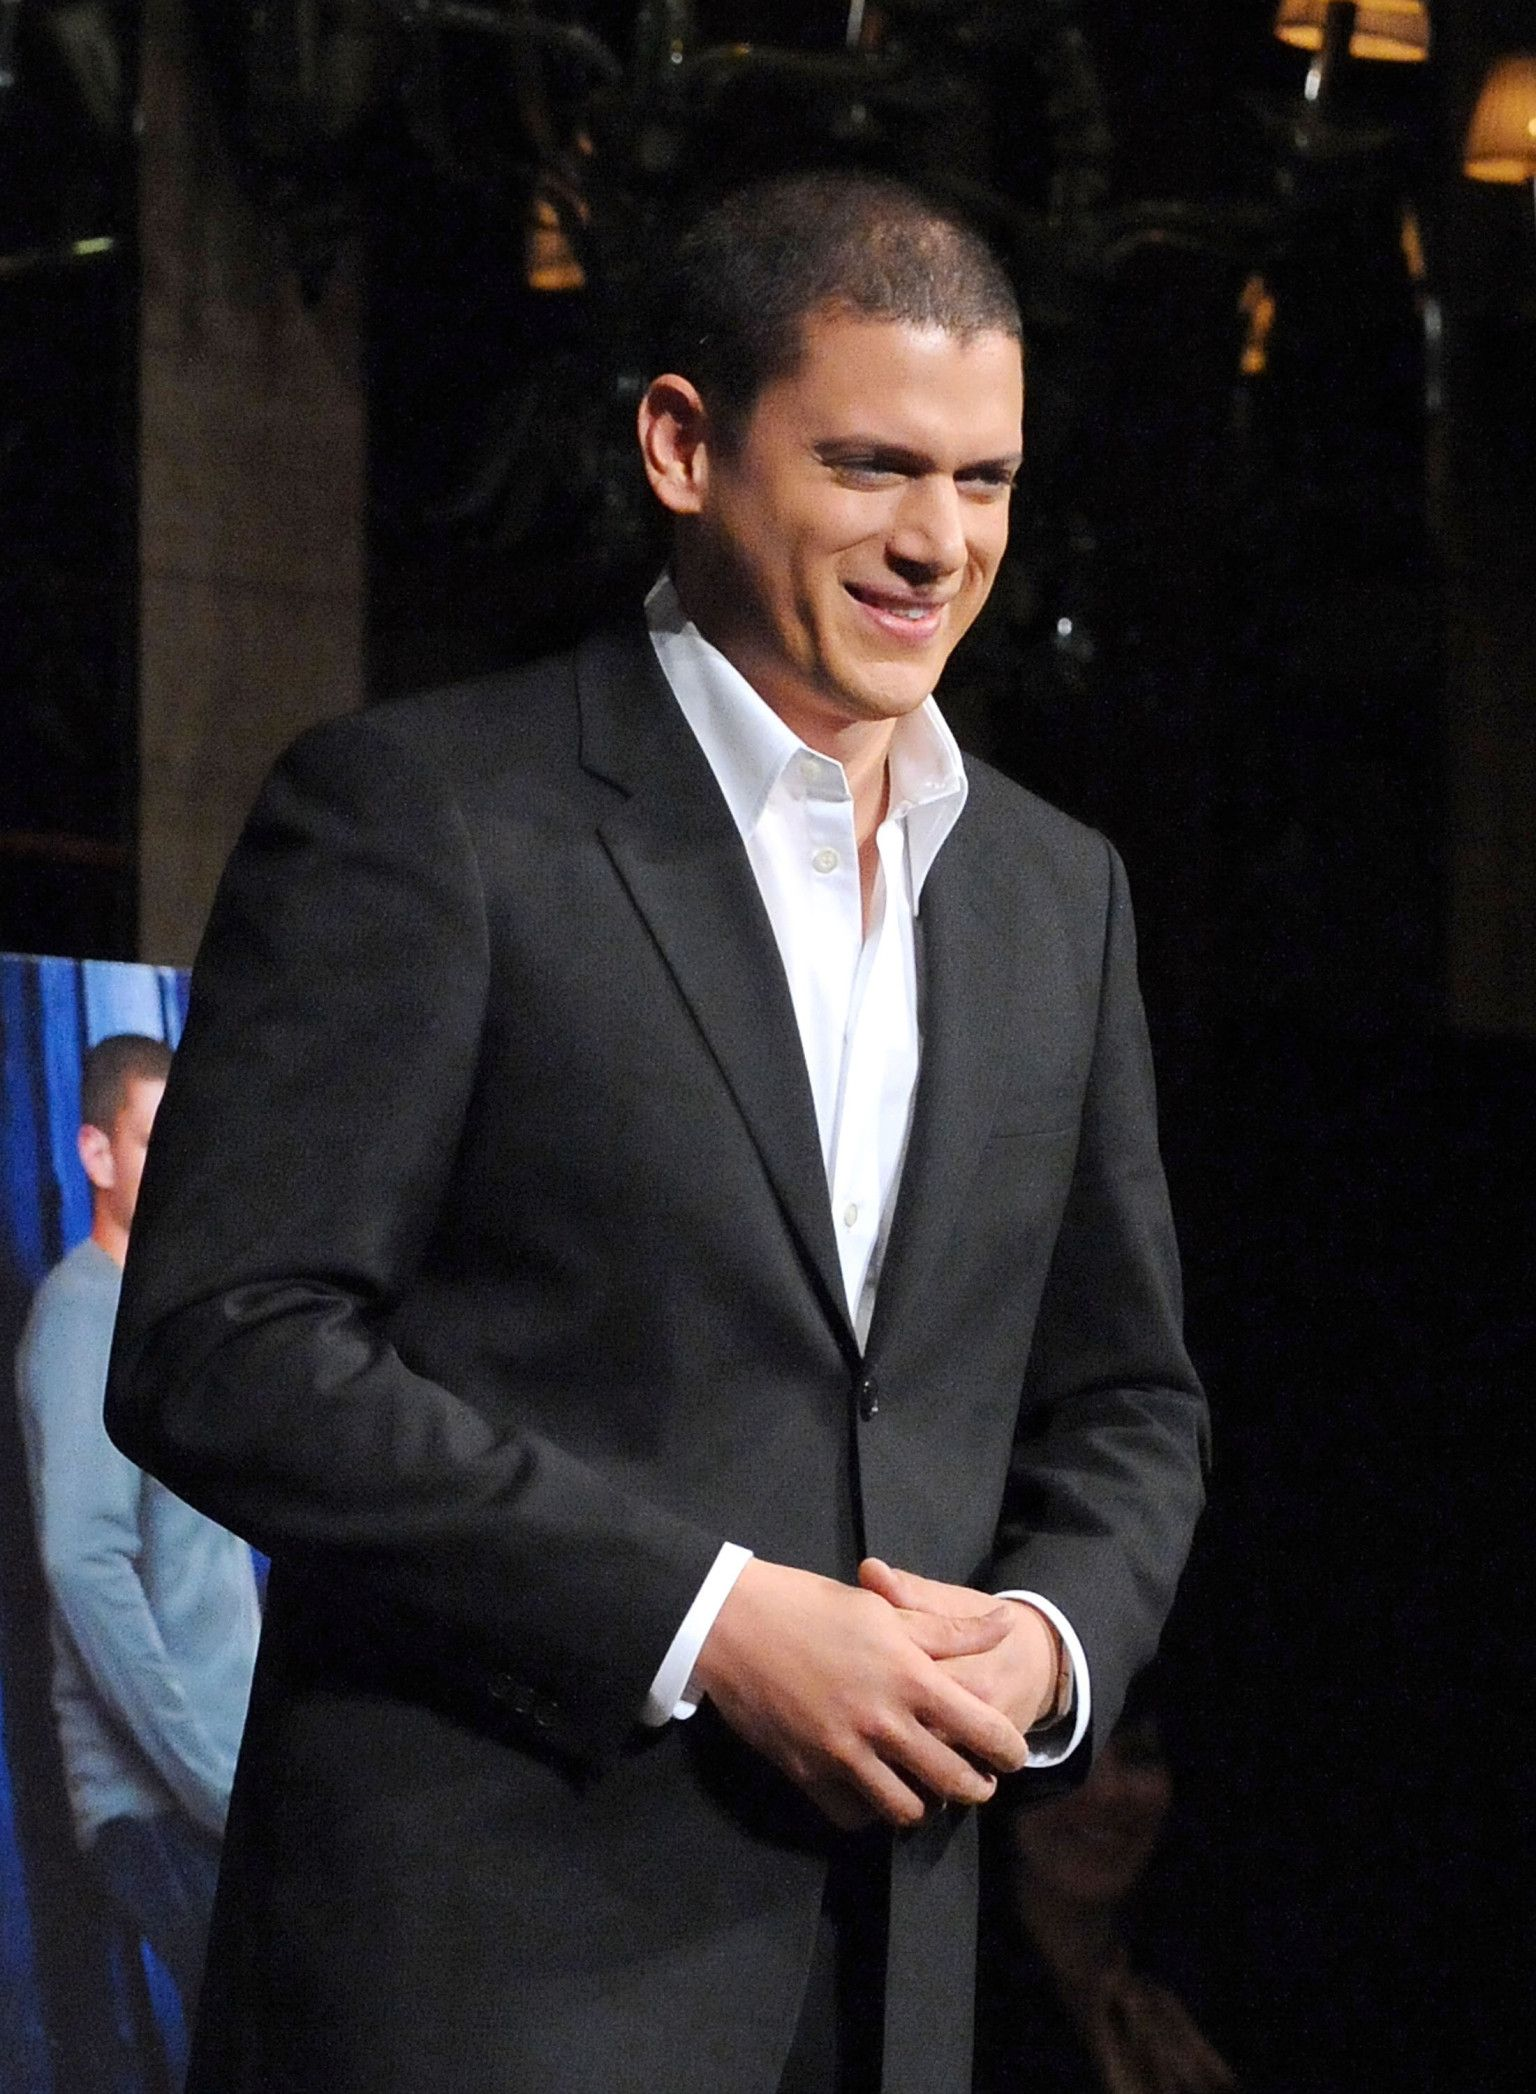 Prison Break Star Reveals Hes Gay Comes Out For Very